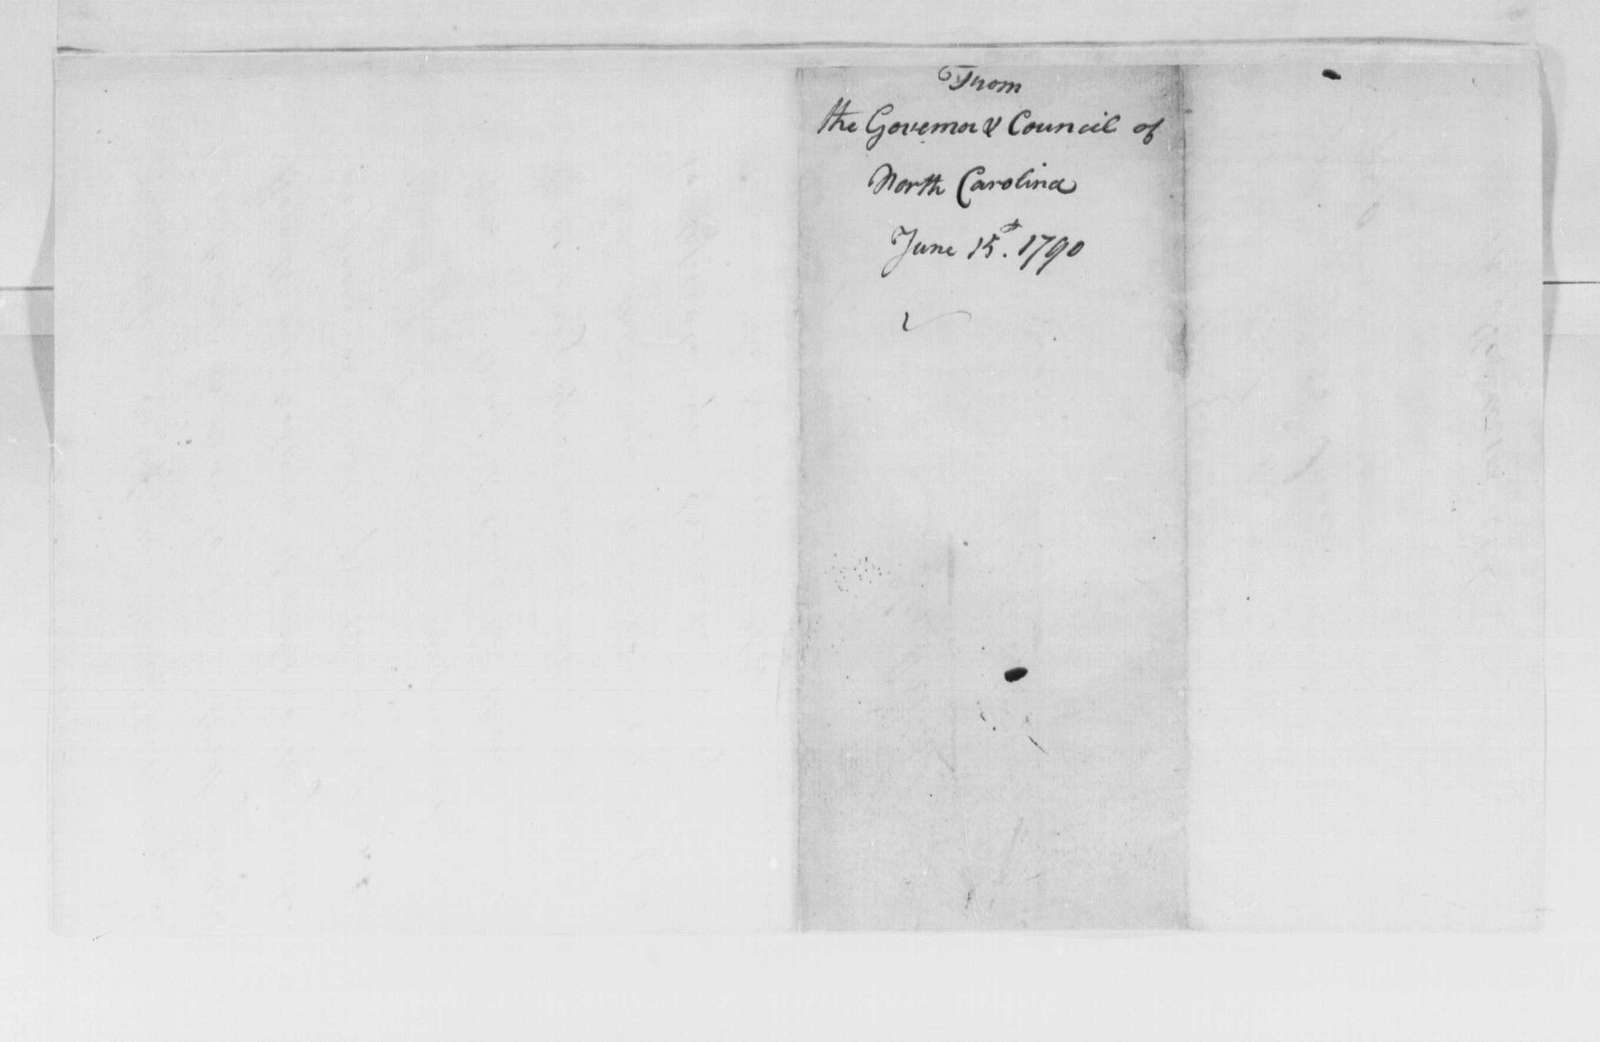 George Washington Papers, Series 4, General Correspondence: North Carolina Governor (Alexander Martin) and Council (Wygate Hawkins) to George Washington, June 25, 1790